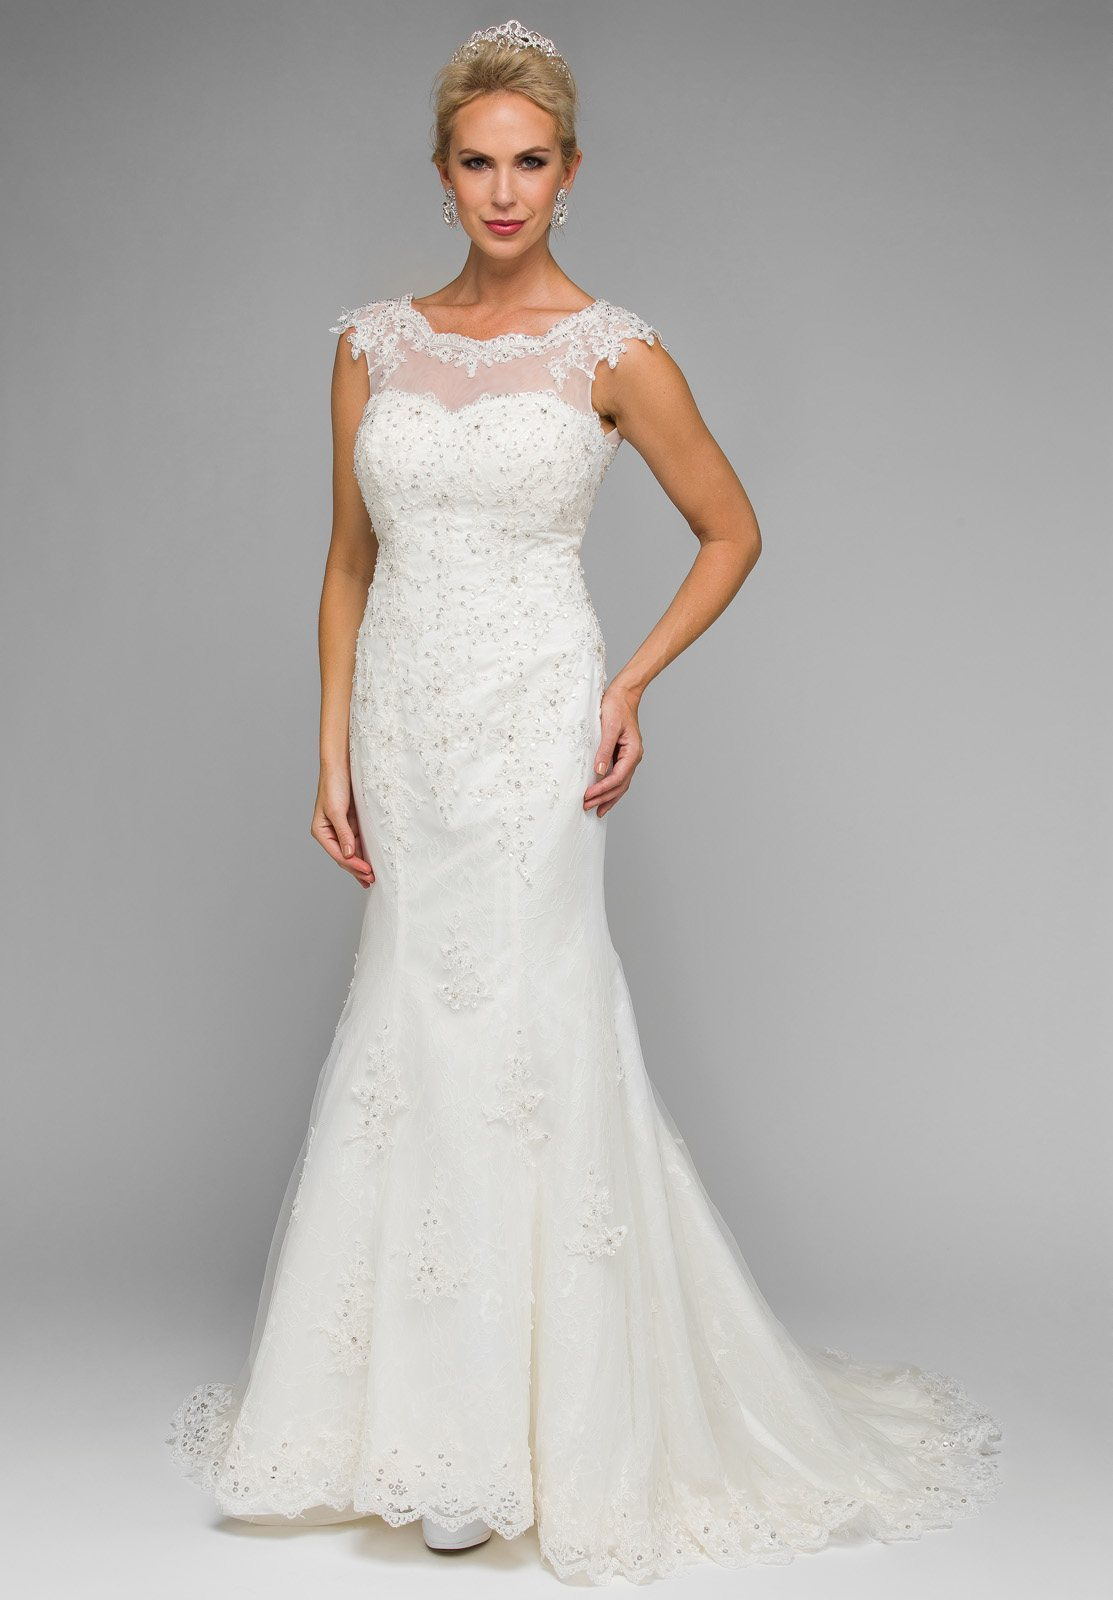 3b07f2c303c9 White Illusion Sweetheart Neckline Beaded Wedding Gown Sleeveless. Tap to  expand